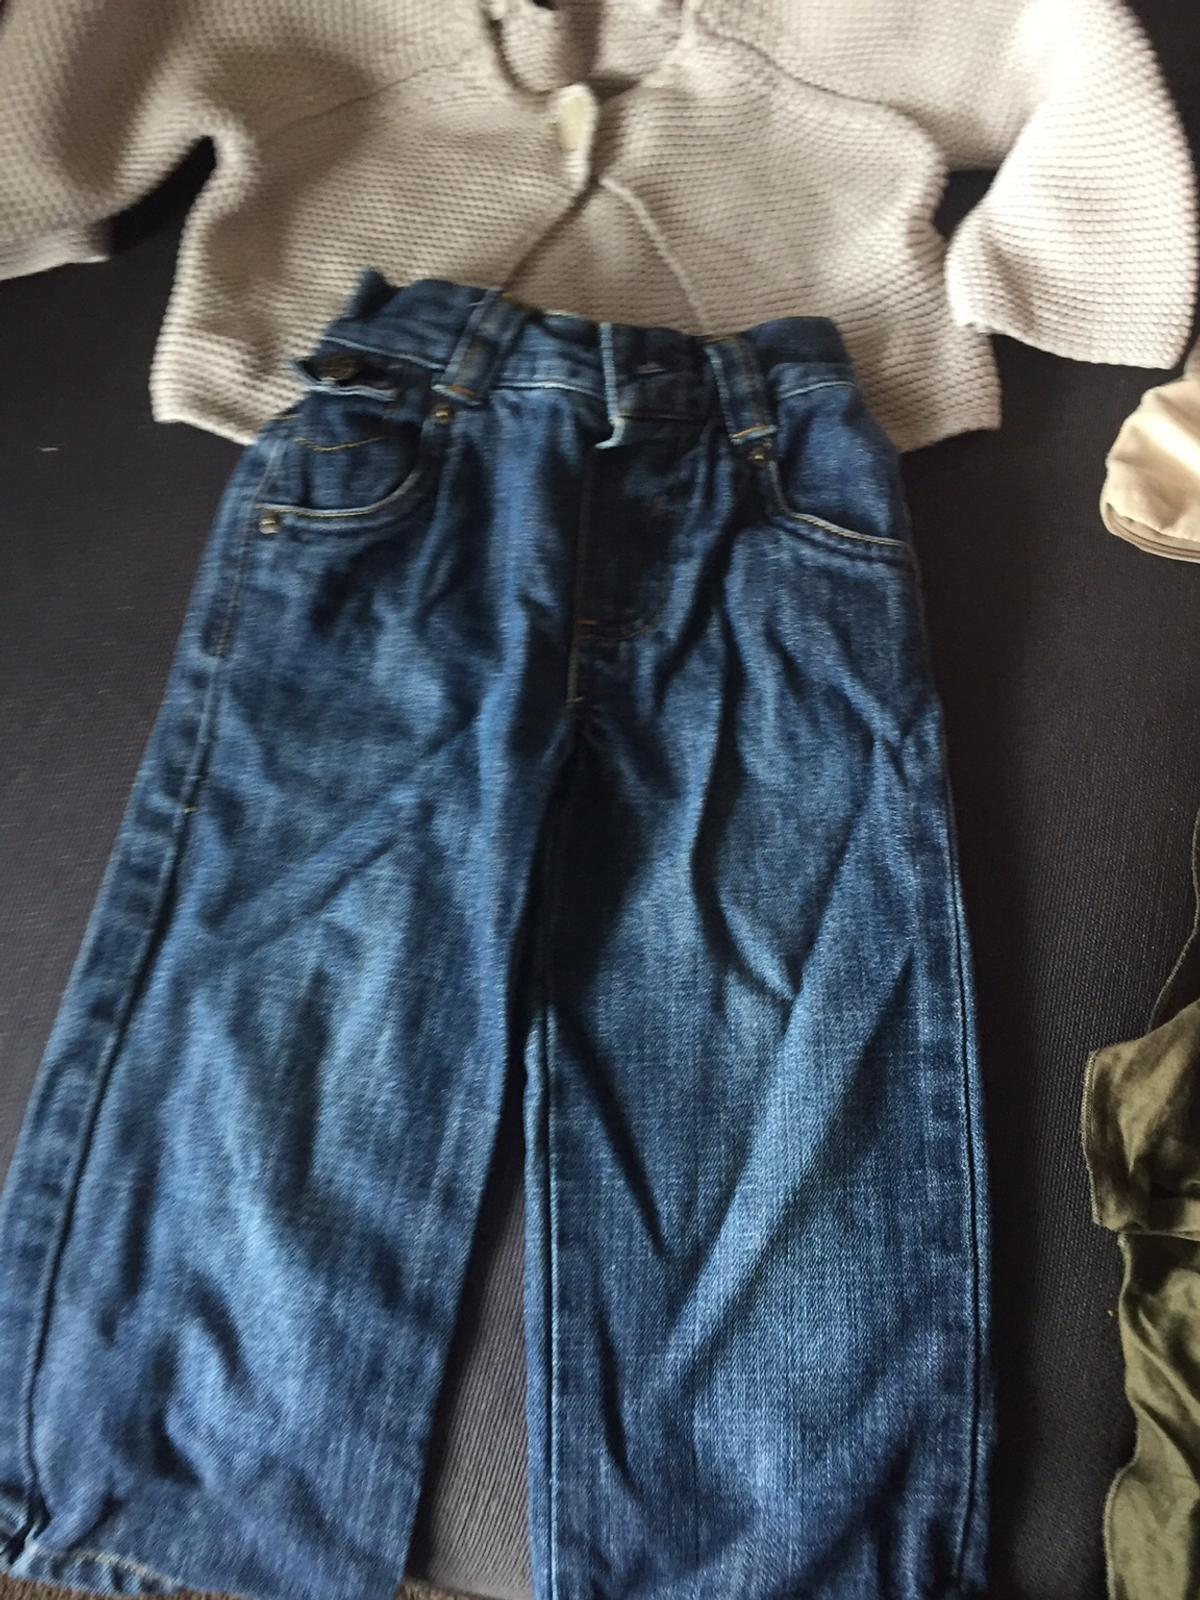 cc89255eab7f Selection of girls 12-18 designer clothes in S6 Sheffield for £6.00 ...